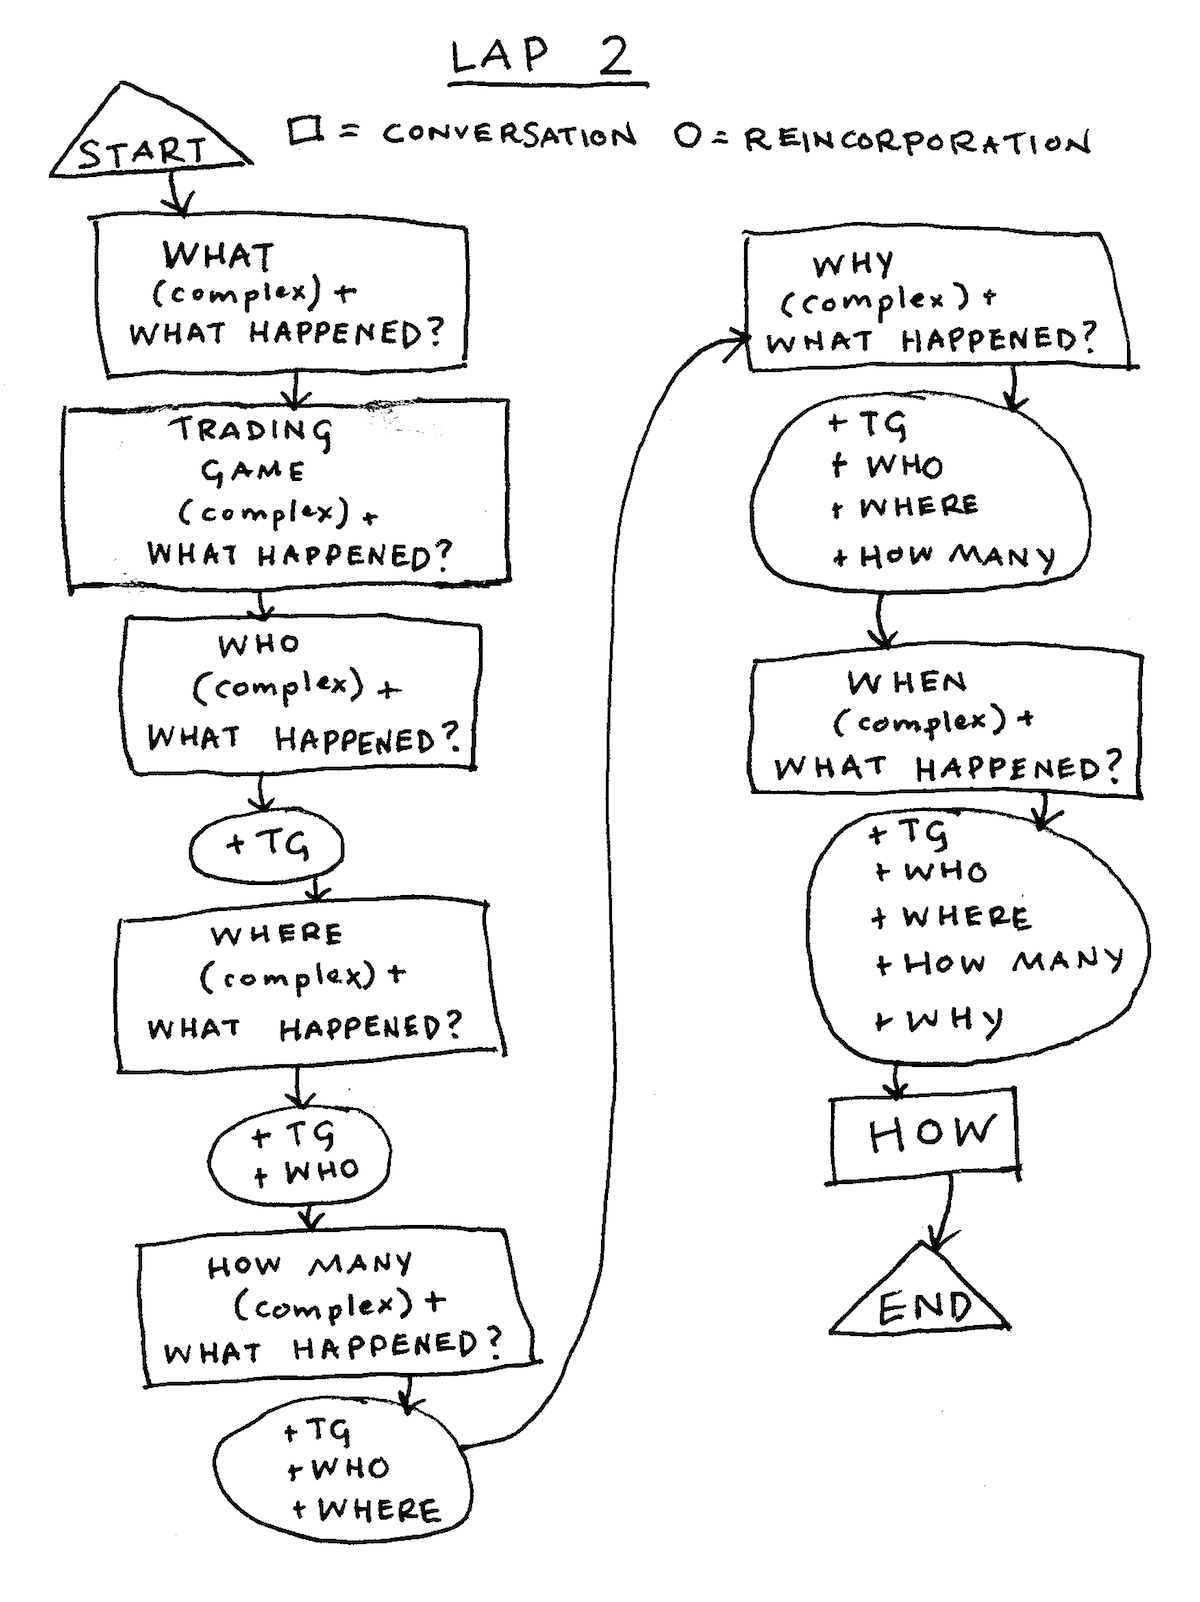 "Flowchart for Lap 2 - More complex conversations, plus ""What Happened?"", WHEN, and HOW"